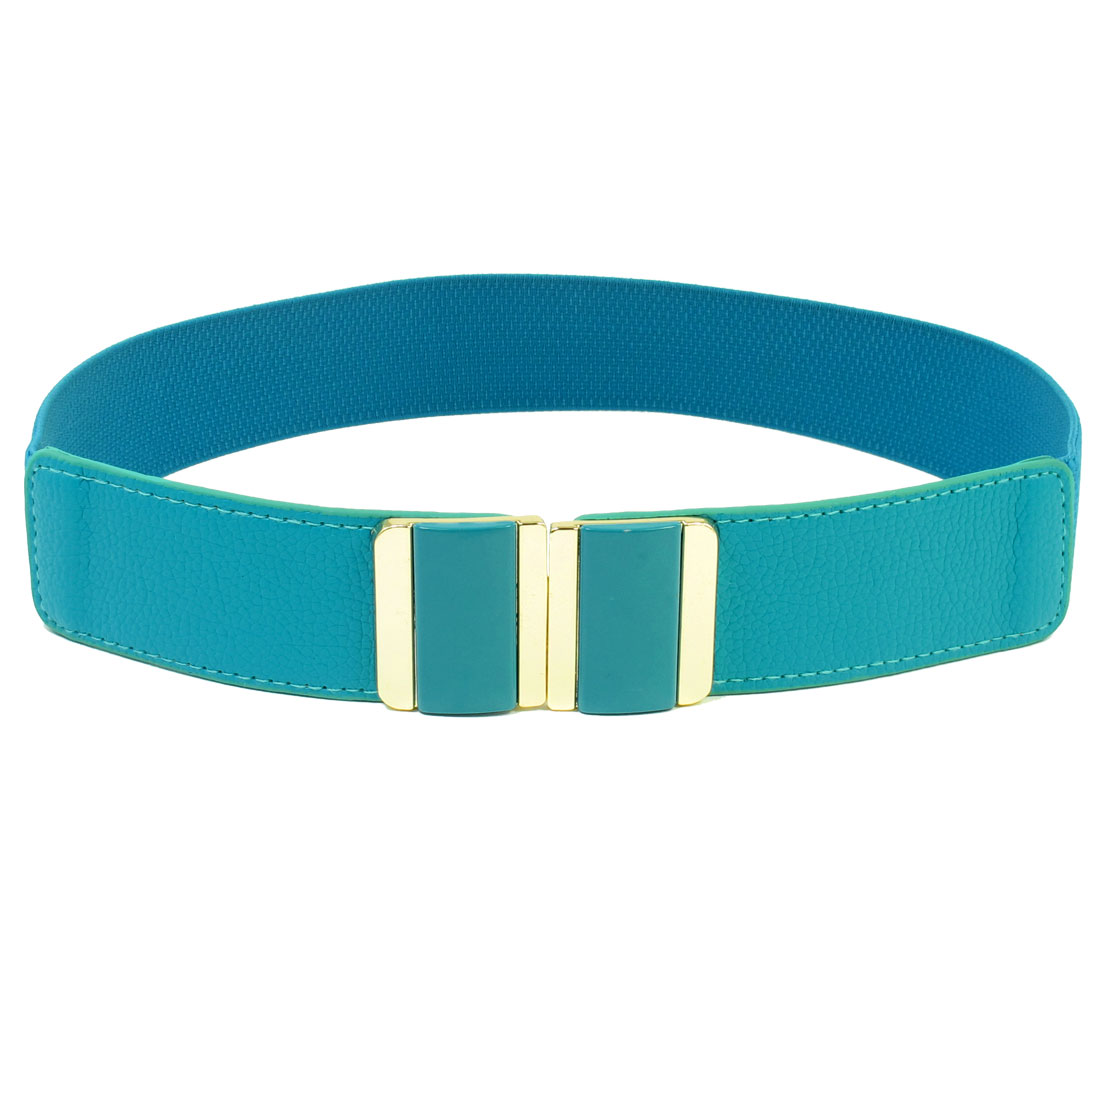 Cyan Retangle Design Interlocking Buckle Elastic Waistband Waist Belt for Lady